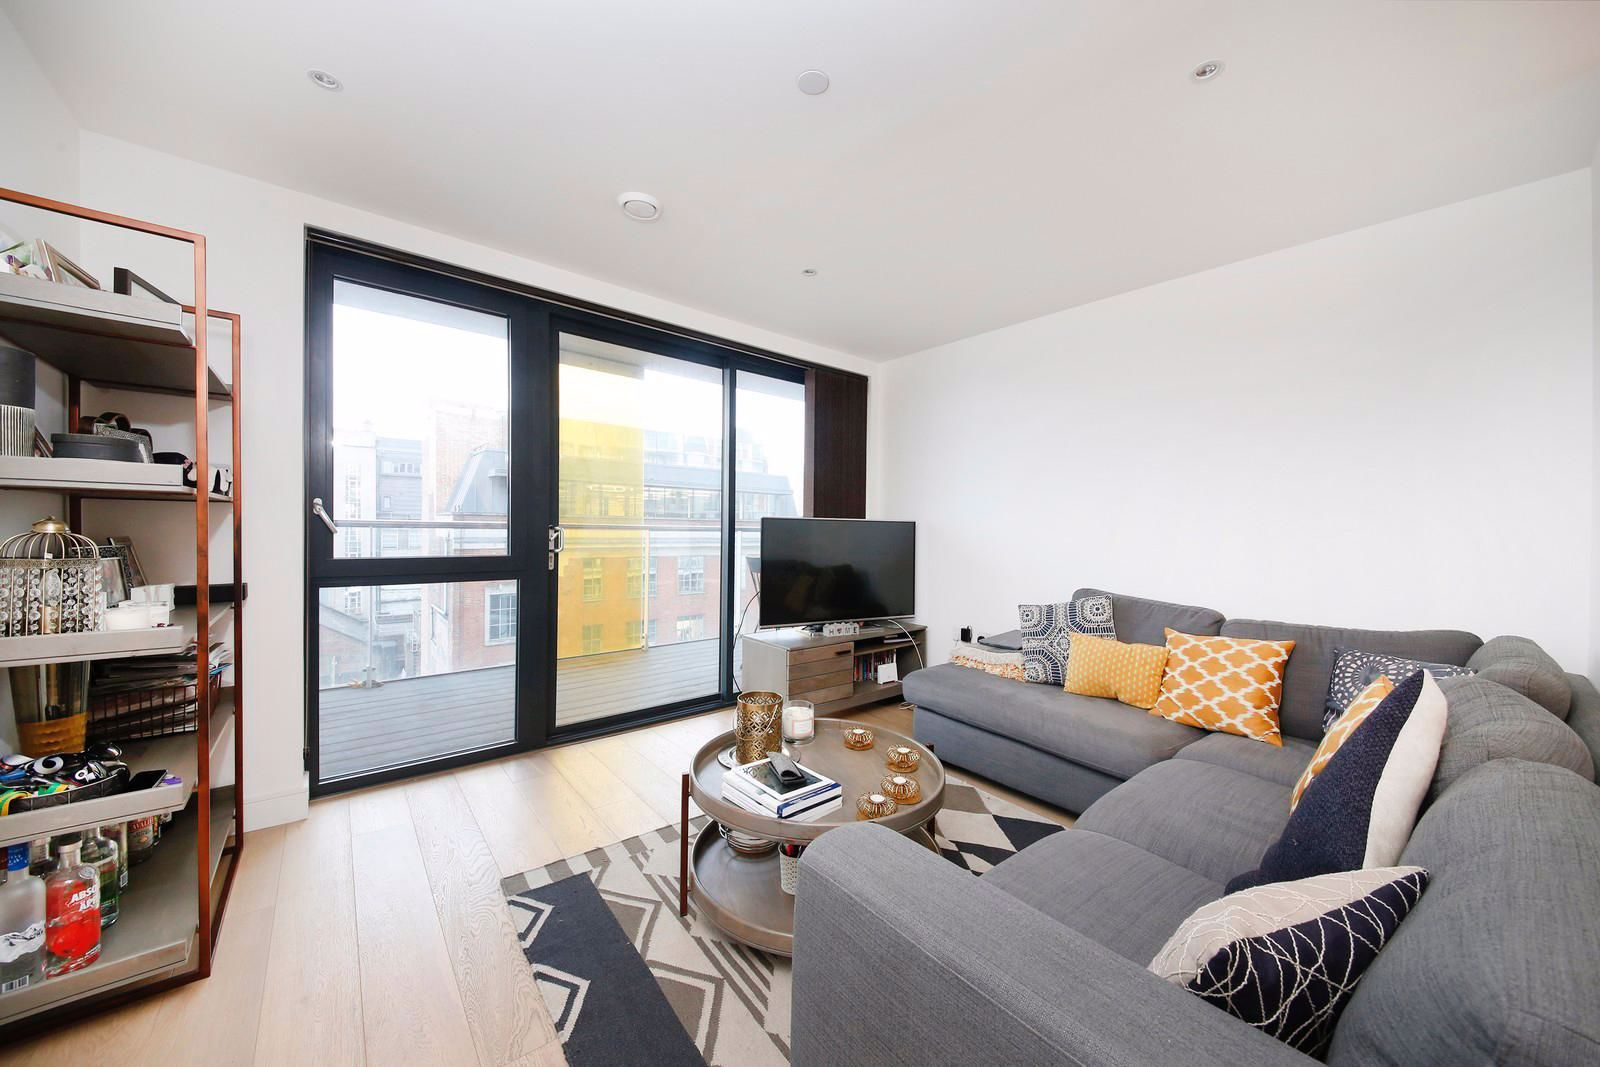 1 bed flat to rent in Kensington Apartments, E1